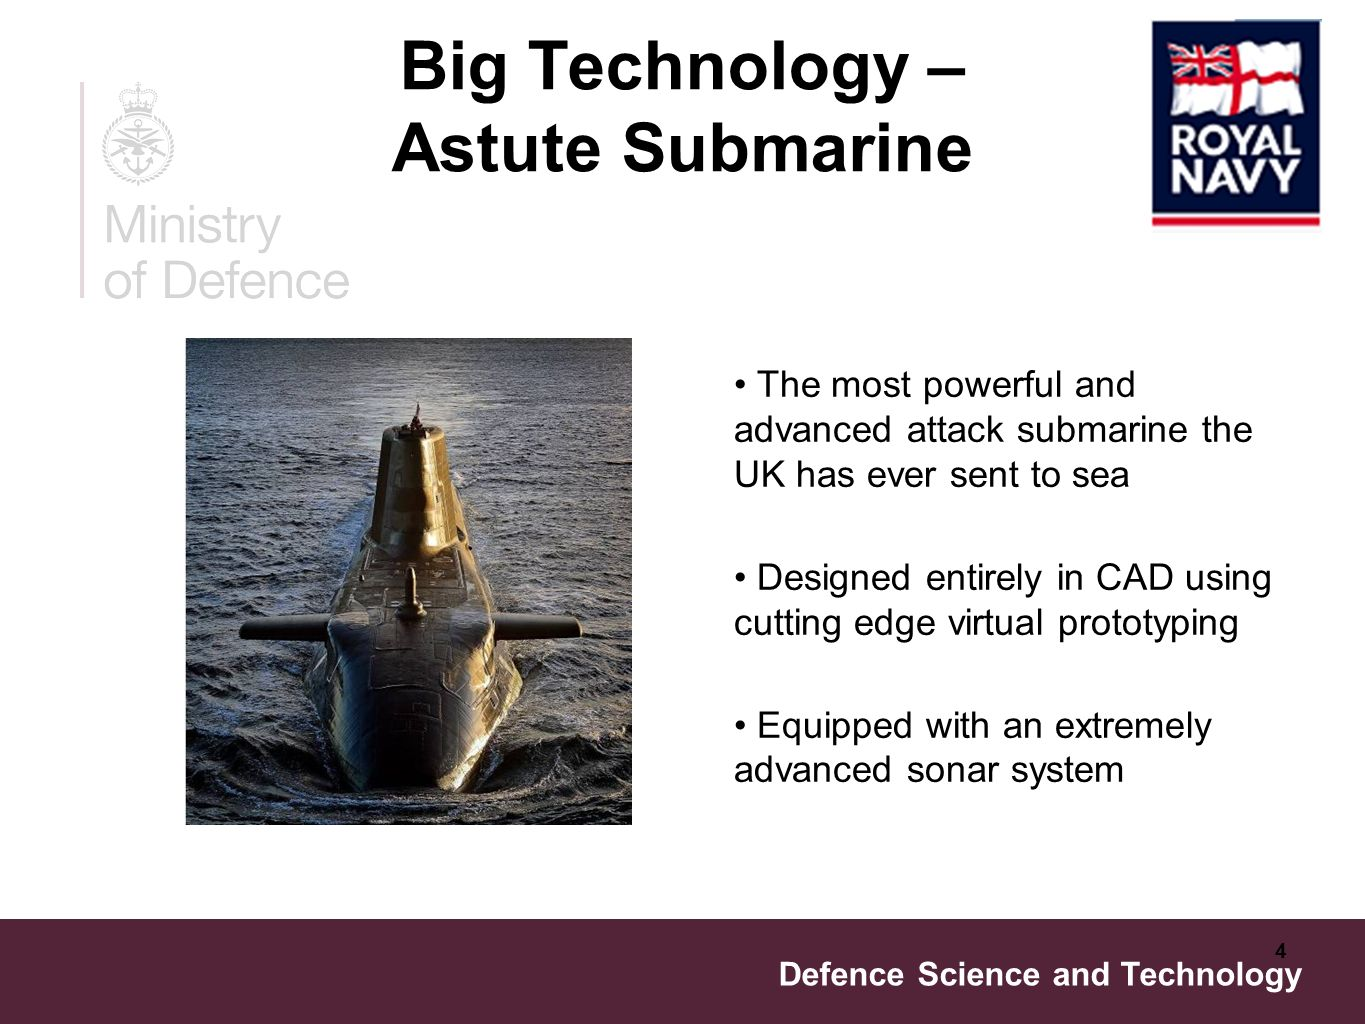 Defence Science and Technology 4 Big Technology – Astute Submarine The most powerful and advanced attack submarine the UK has ever sent to sea Designed entirely in CAD using cutting edge virtual prototyping Equipped with an extremely advanced sonar system